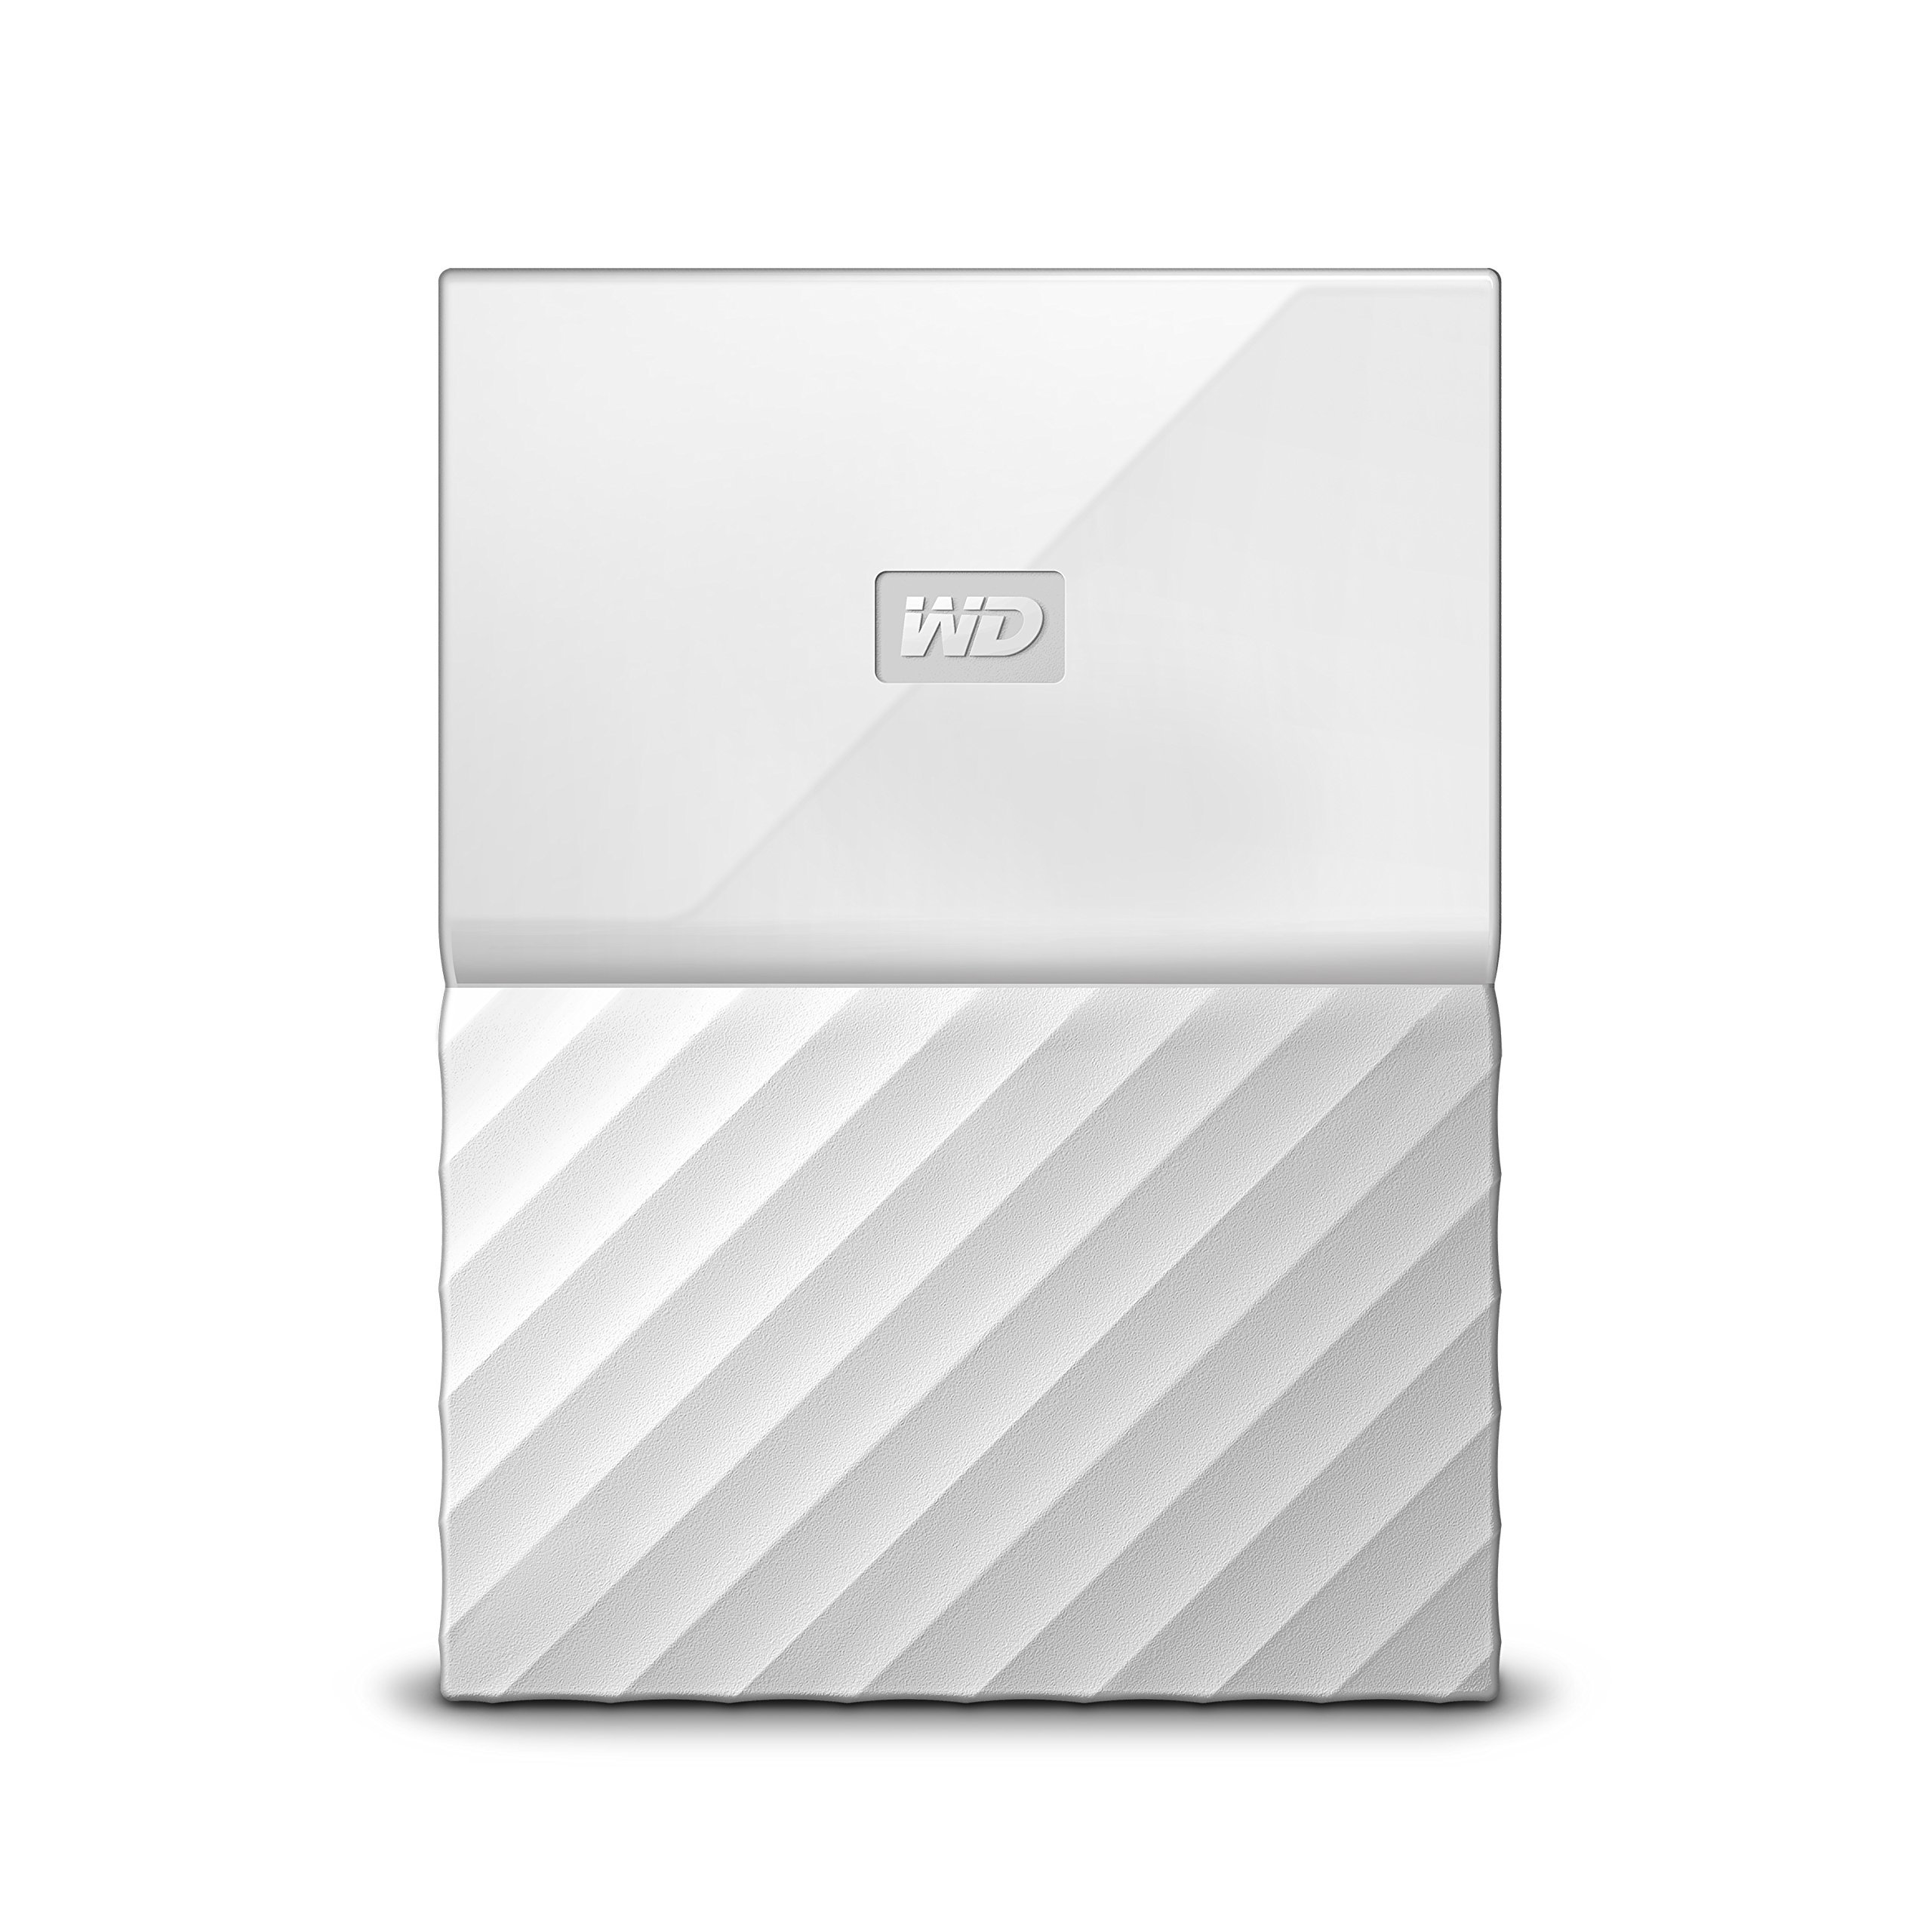 WD 1TB White My Passport  Portable External Hard Drive - USB 3.0 - WDBYNN0010BWT-WESN (Certified Refurbished) by Western Digital